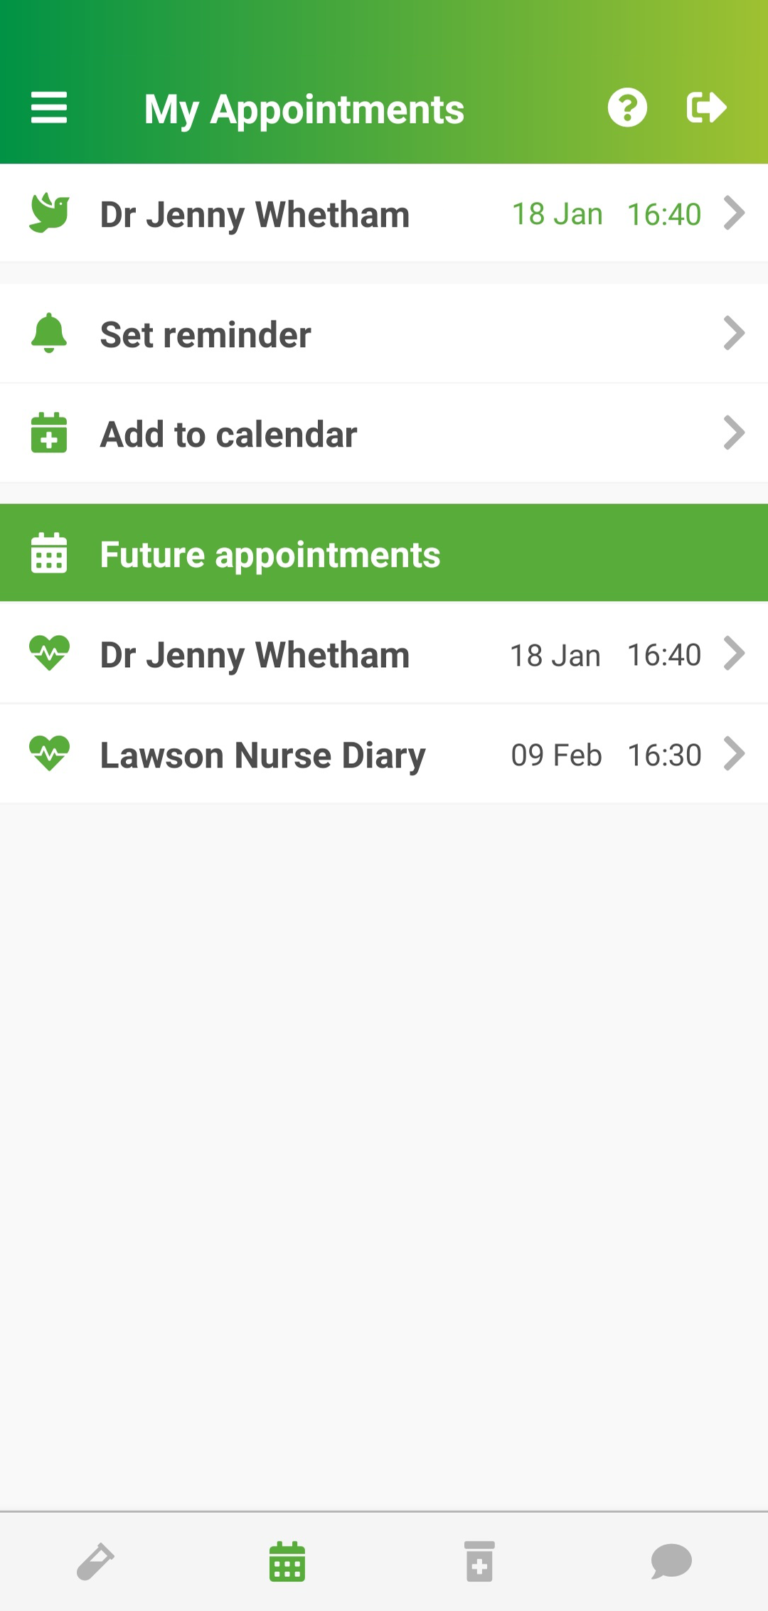 Core-My-Appointments-2021-01-25